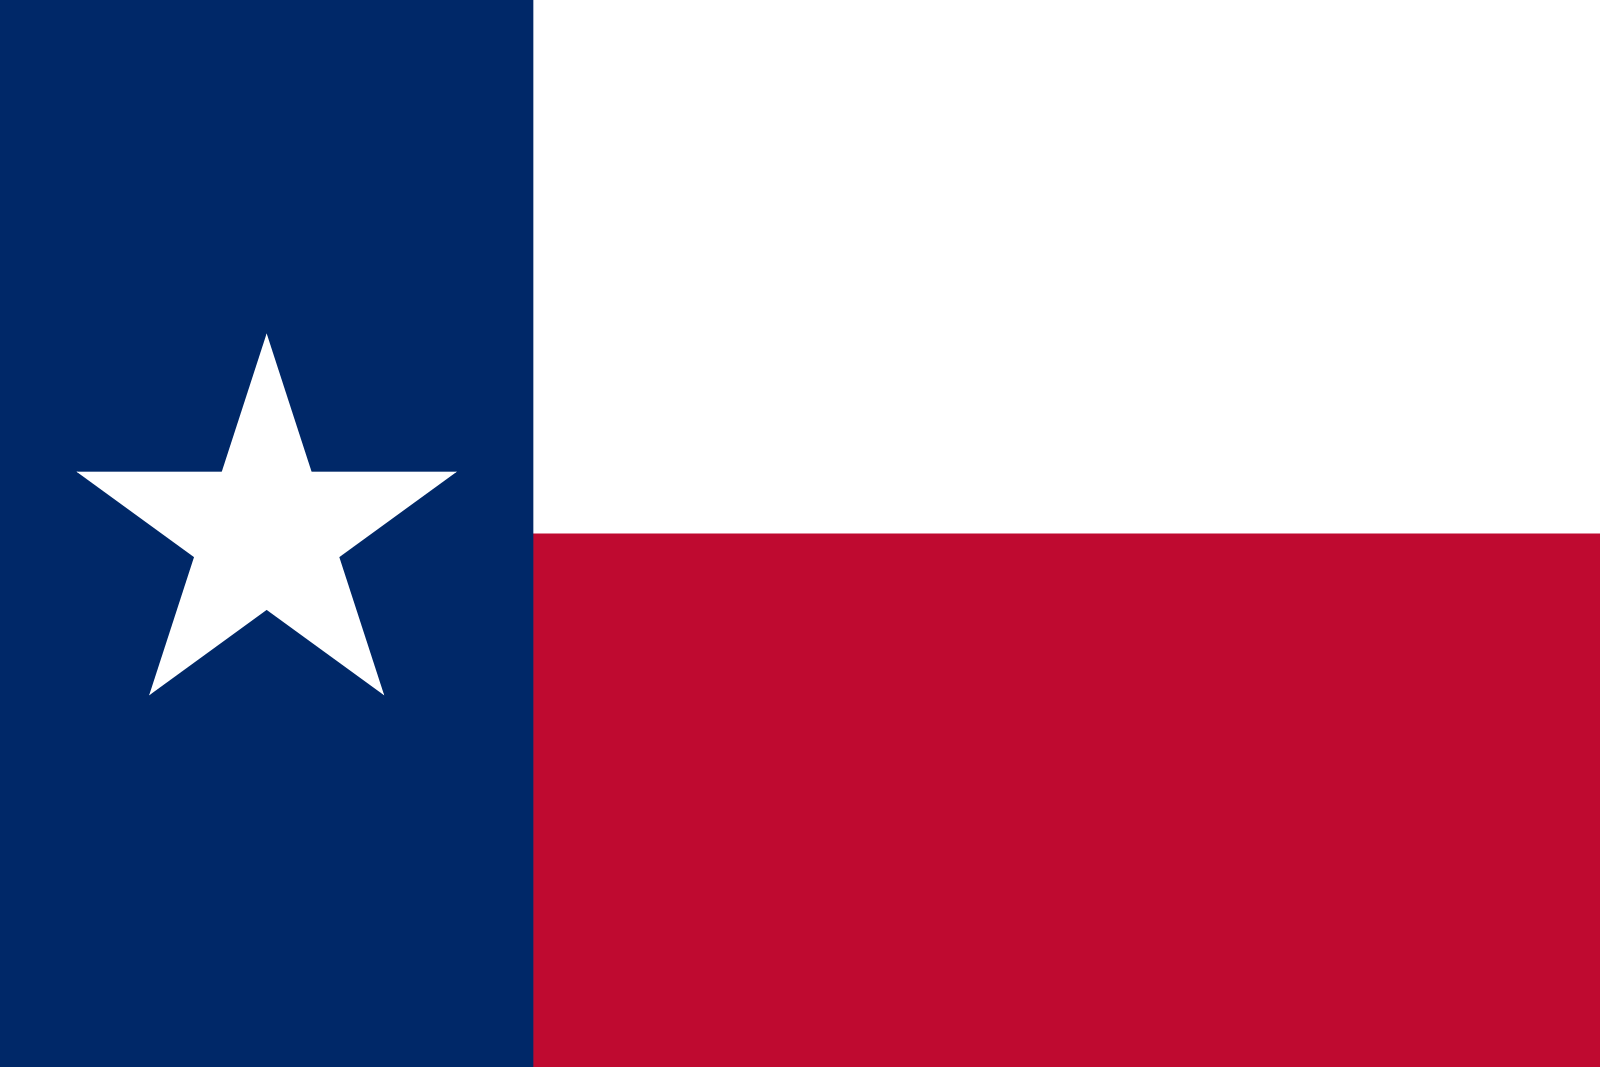 Who is the patron saint of Texas?